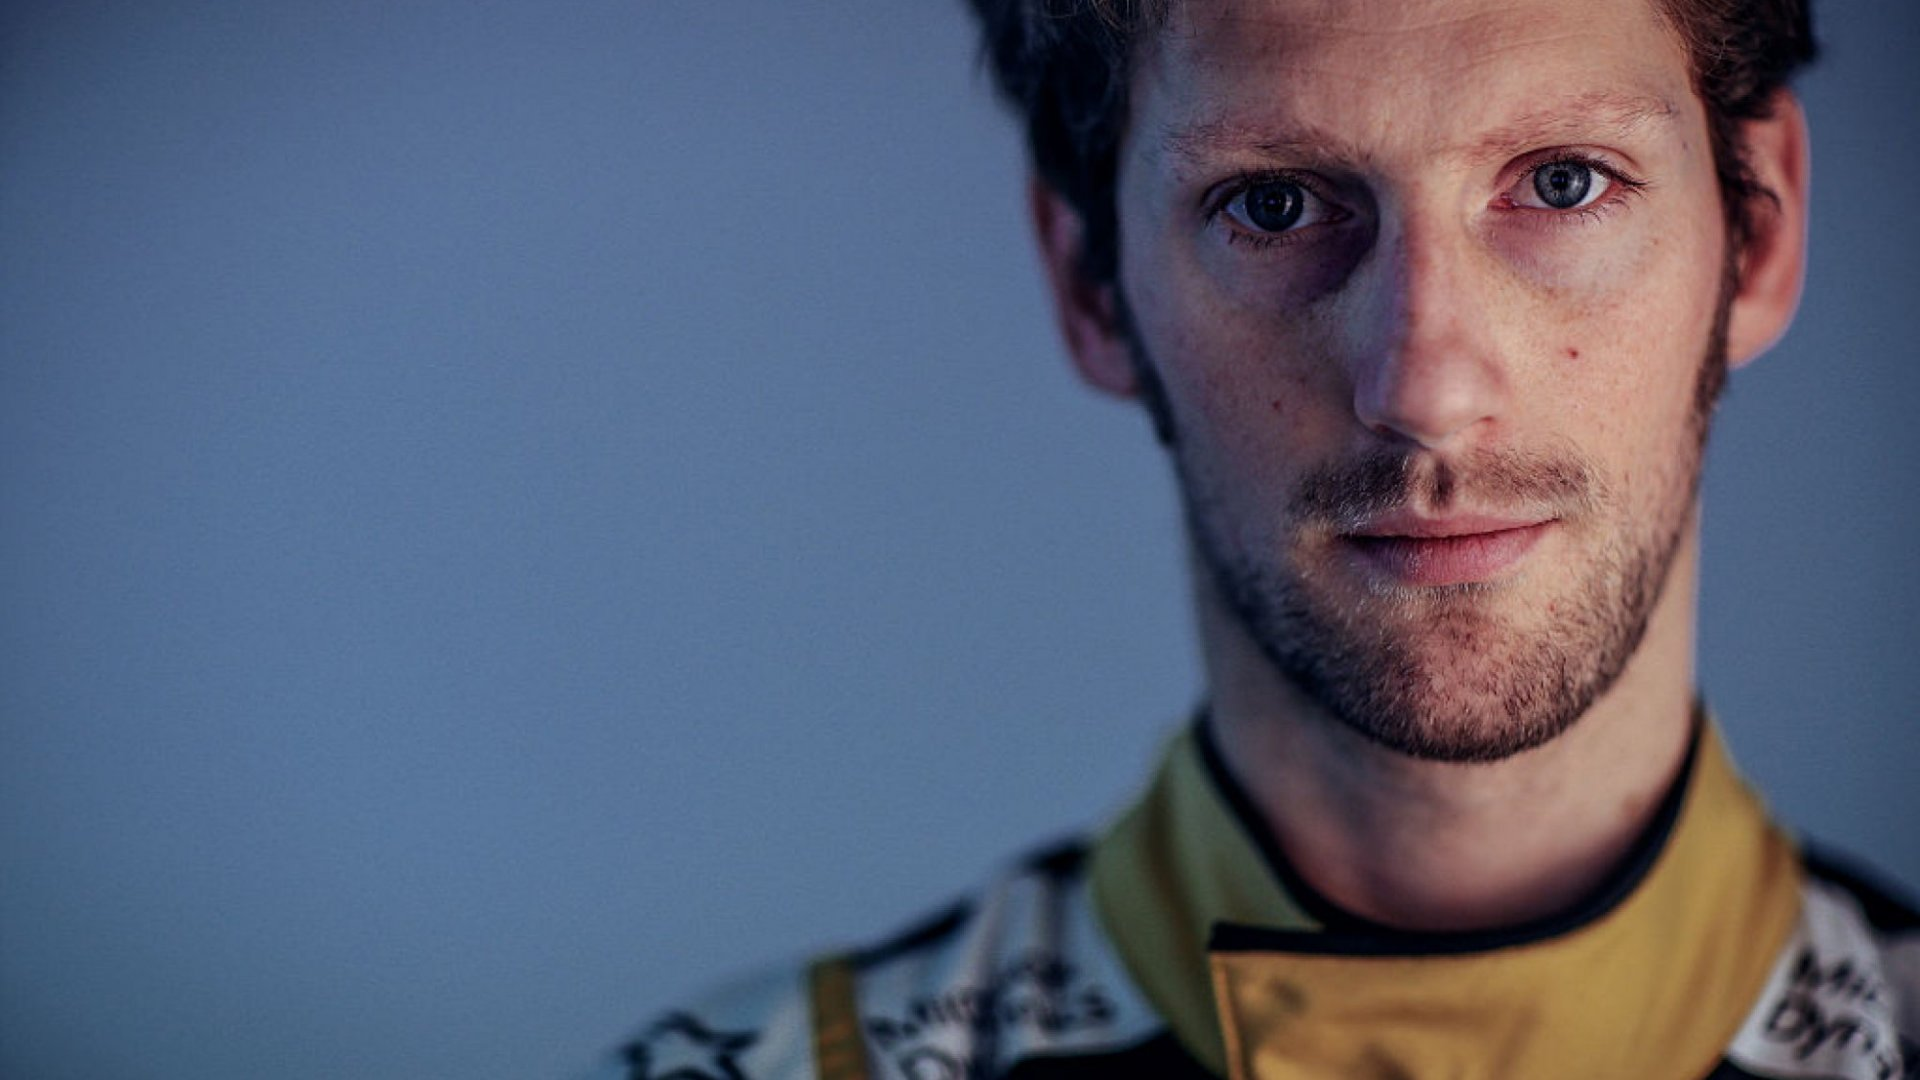 A Racing Driver's Escape From a Horrifying Crash Just Revealed an Uncomfortable Truth About Leadership (and Responsibility)